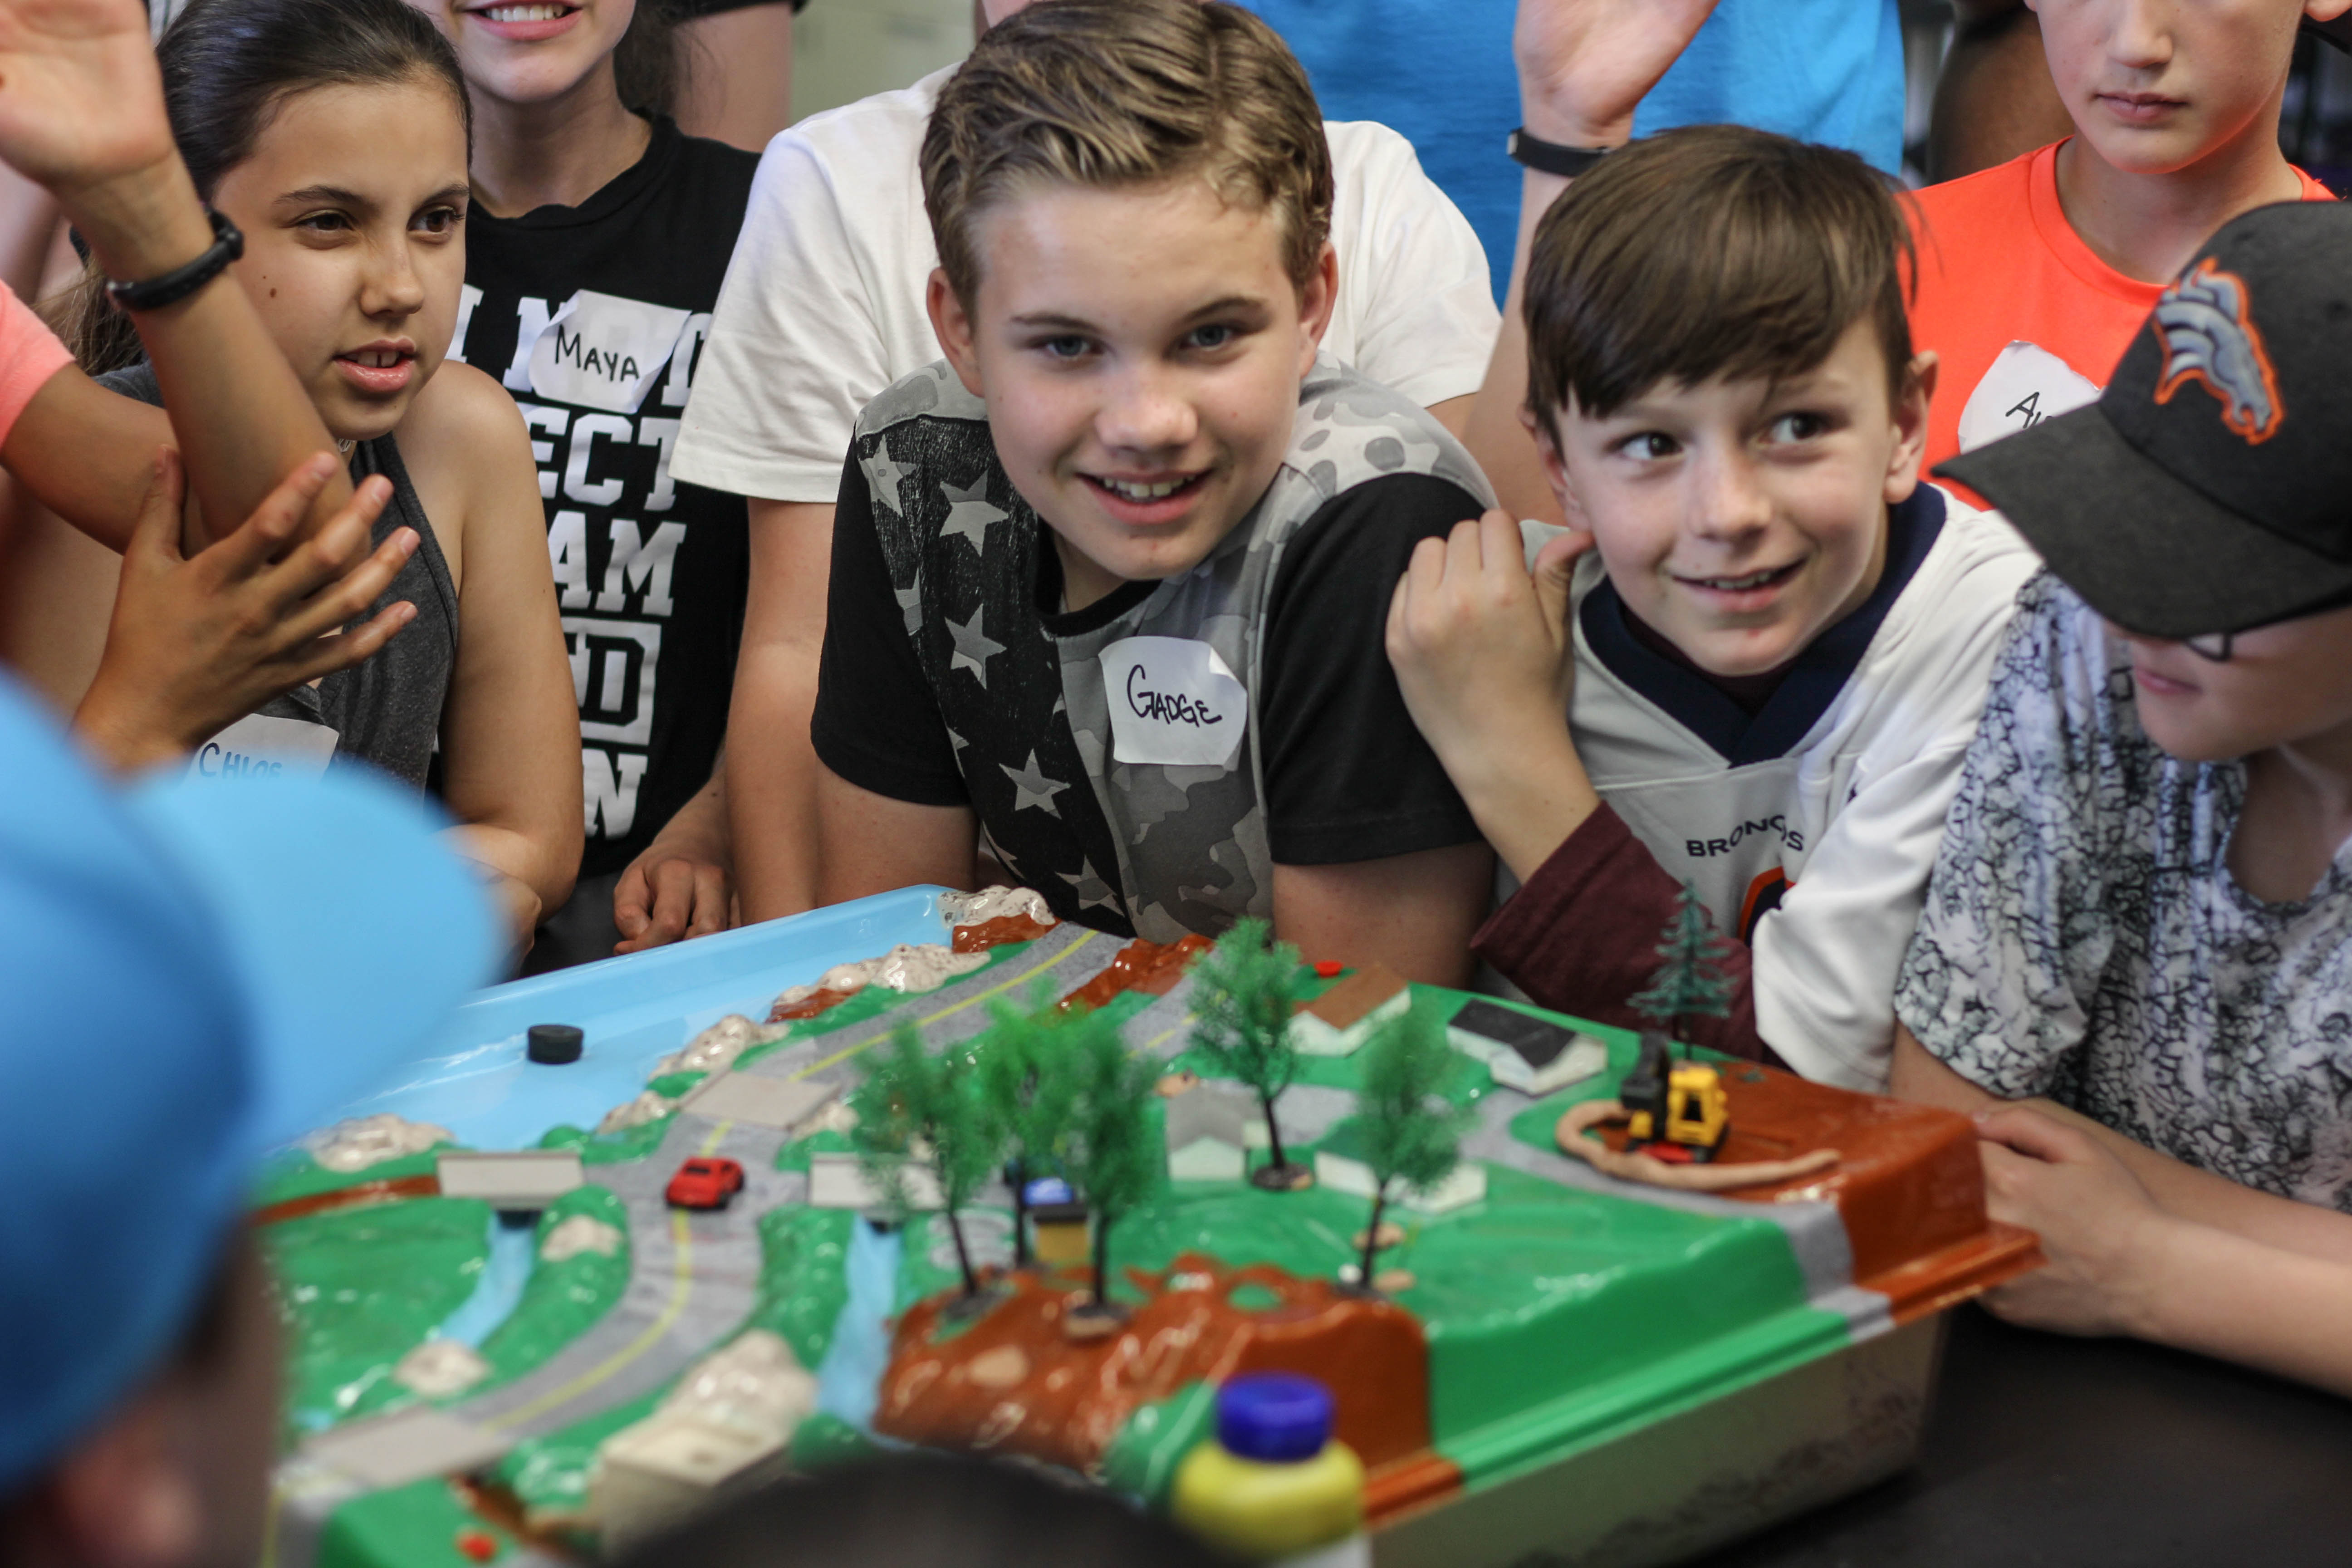 A group of children surround a plastic cityscape, with tiny trees, roads and cars.